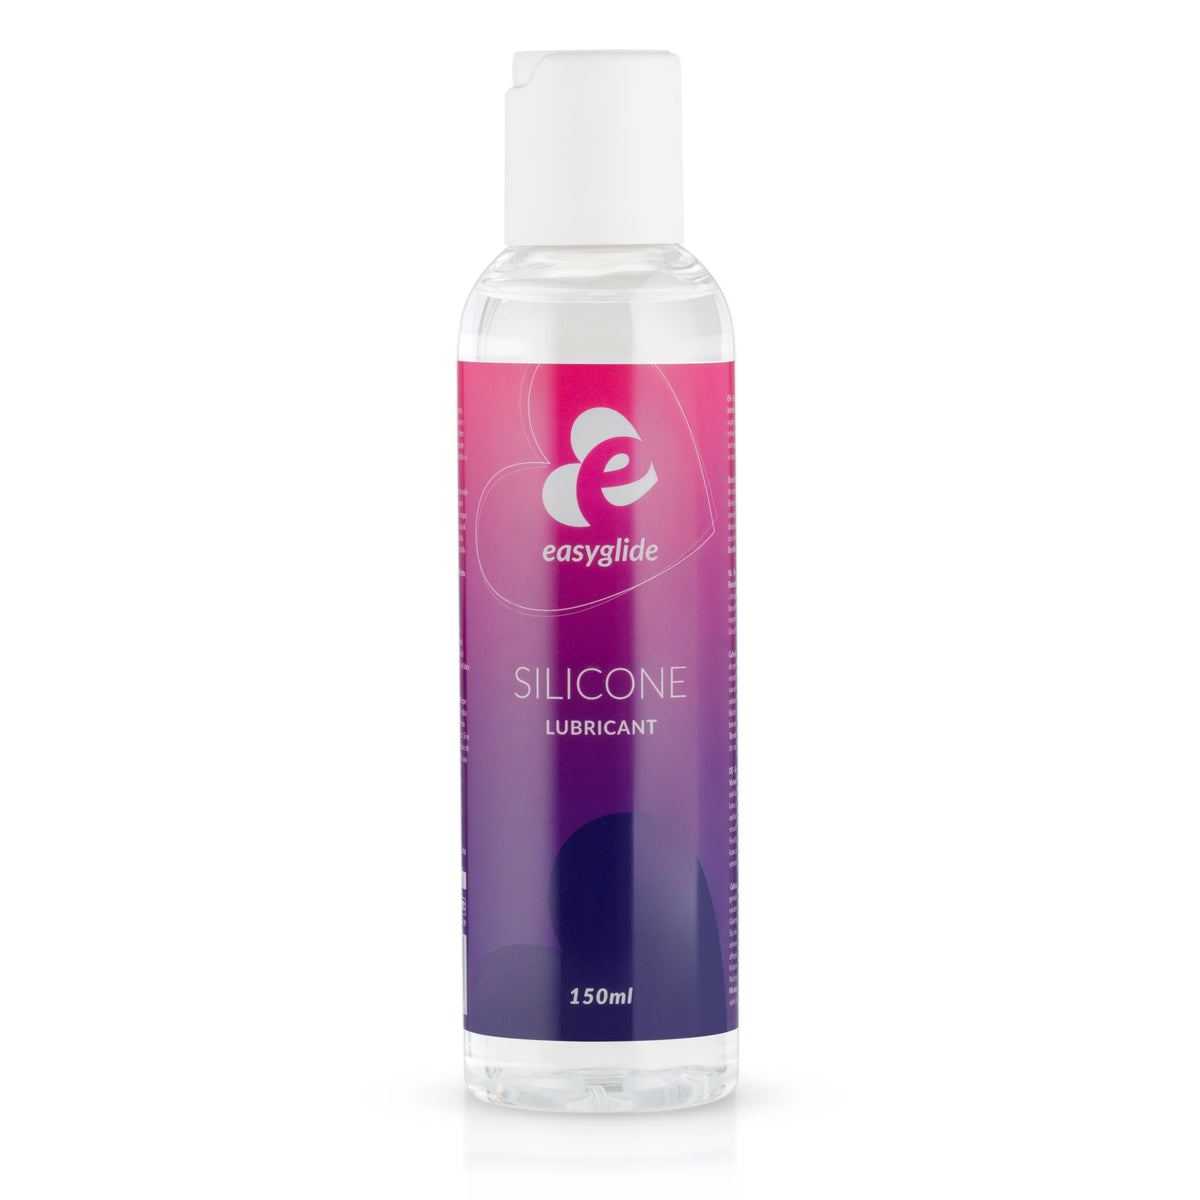 EasyGlide lubricant EasyGlide Silicone Lubricant - 150 ml